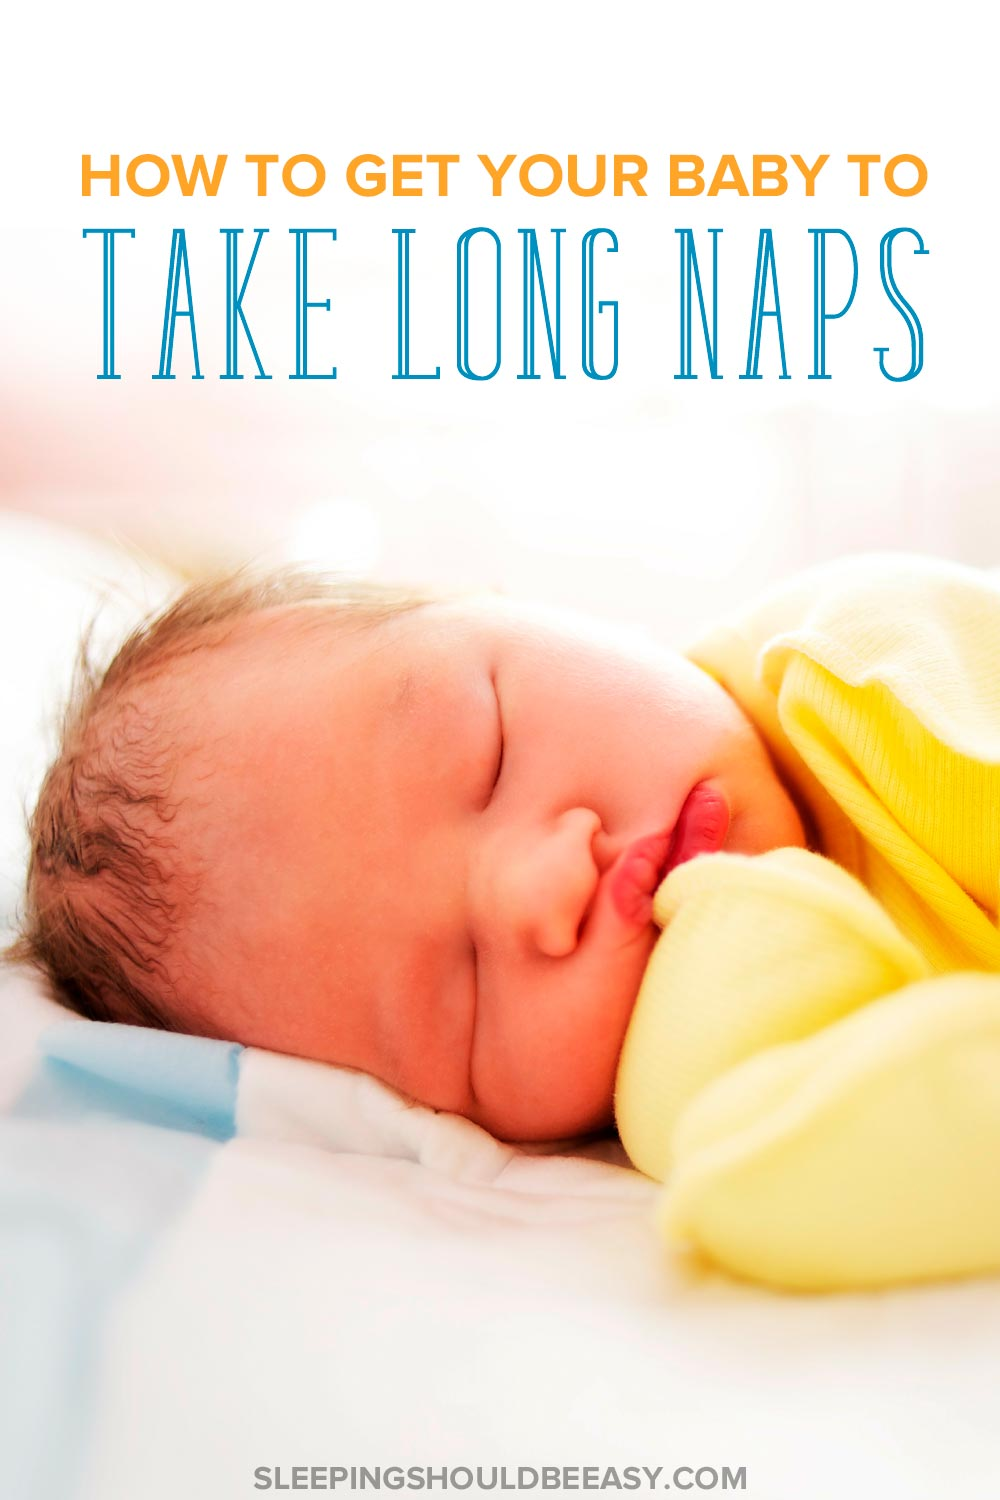 A baby sleeping: How to get your baby to take long naps